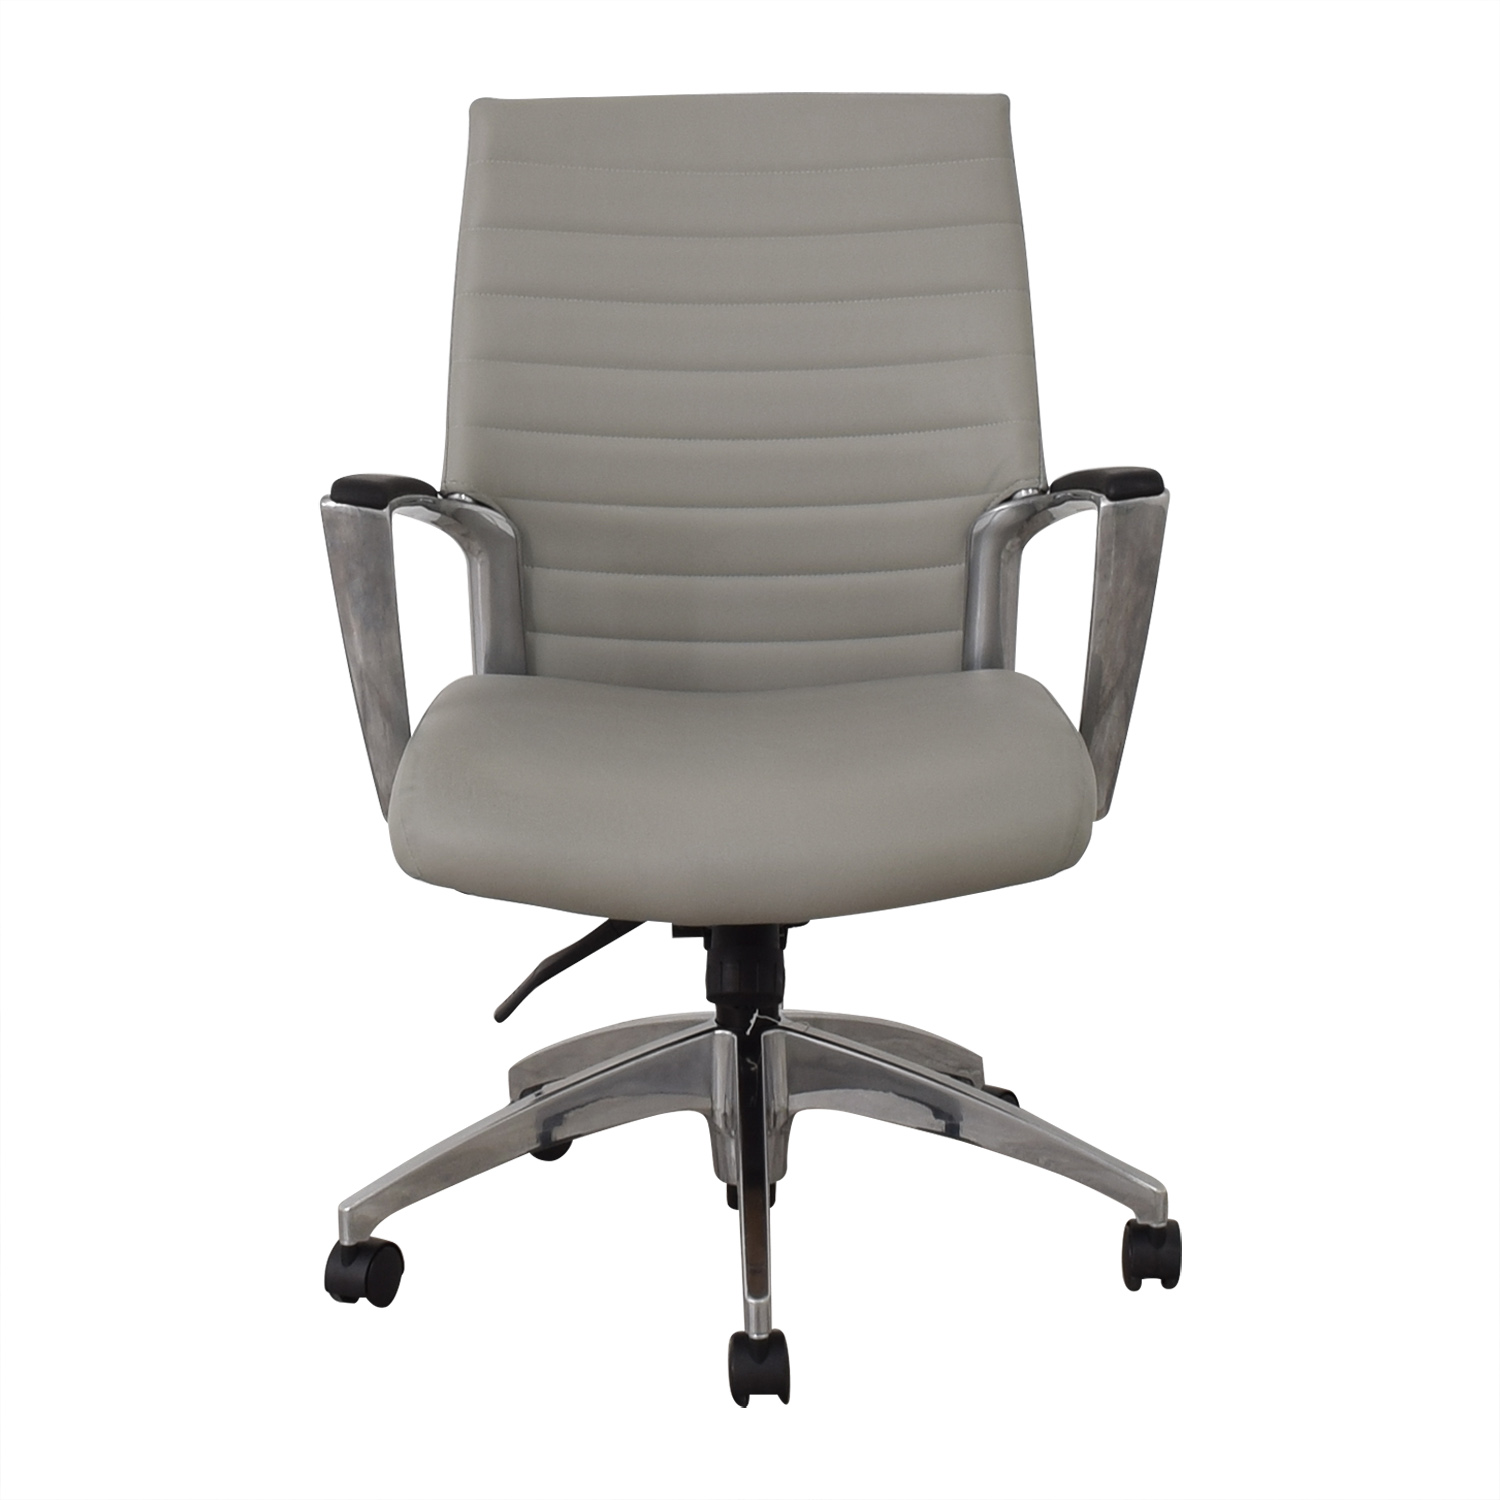 Global Global Accord Upholstered Medium Back Tilter Chair gray